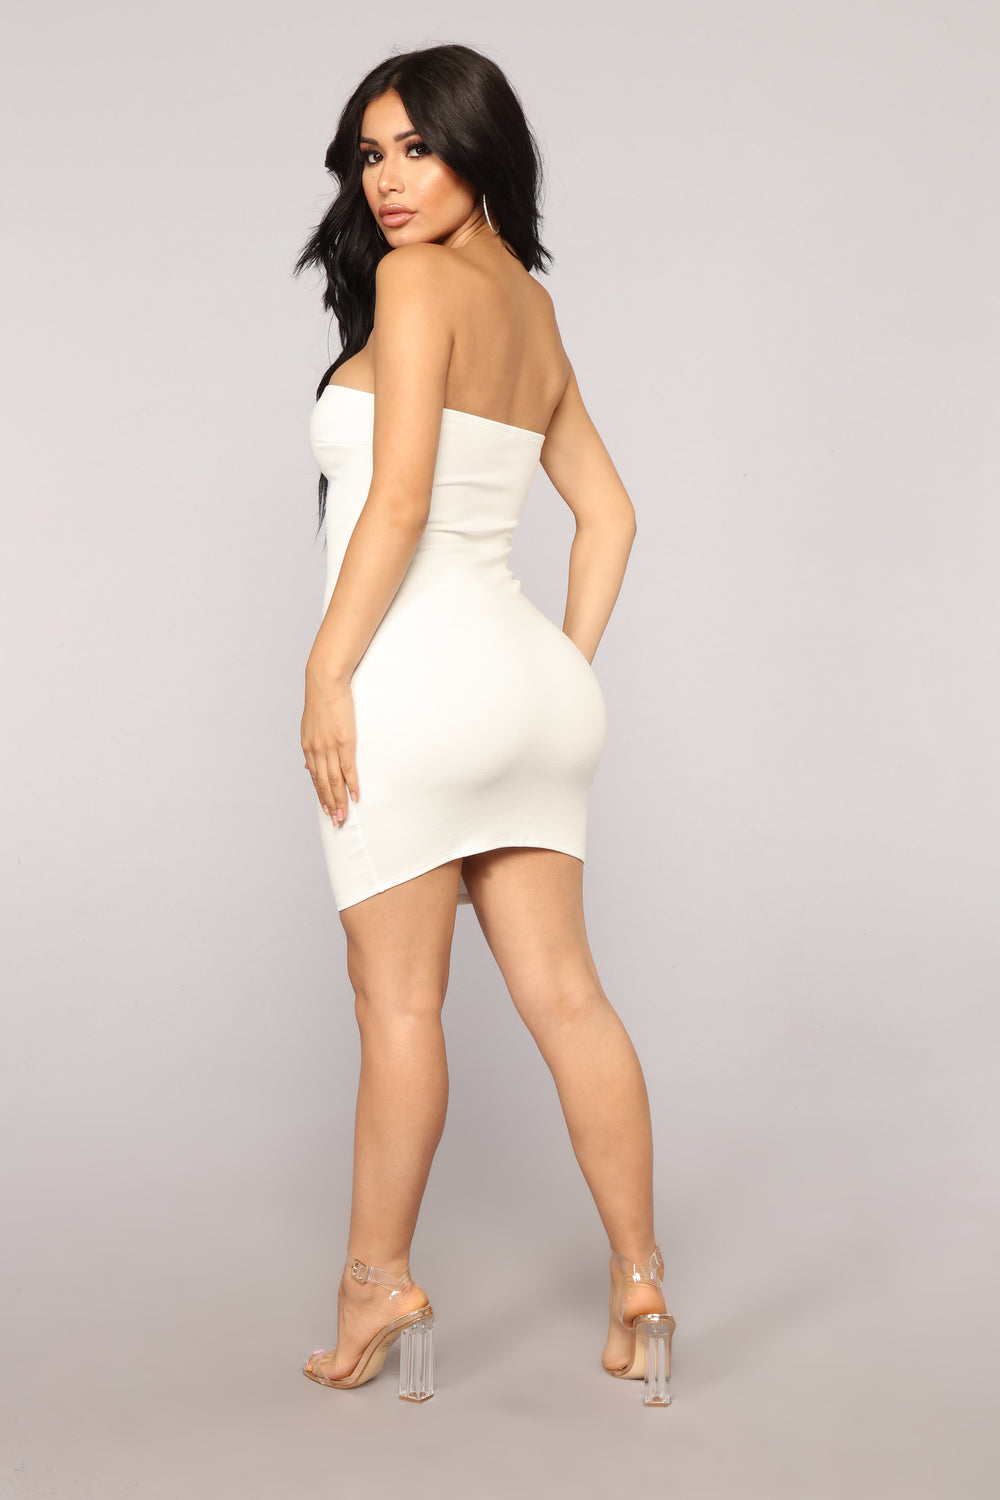 New Zip Code Tube Dress - White/Orange